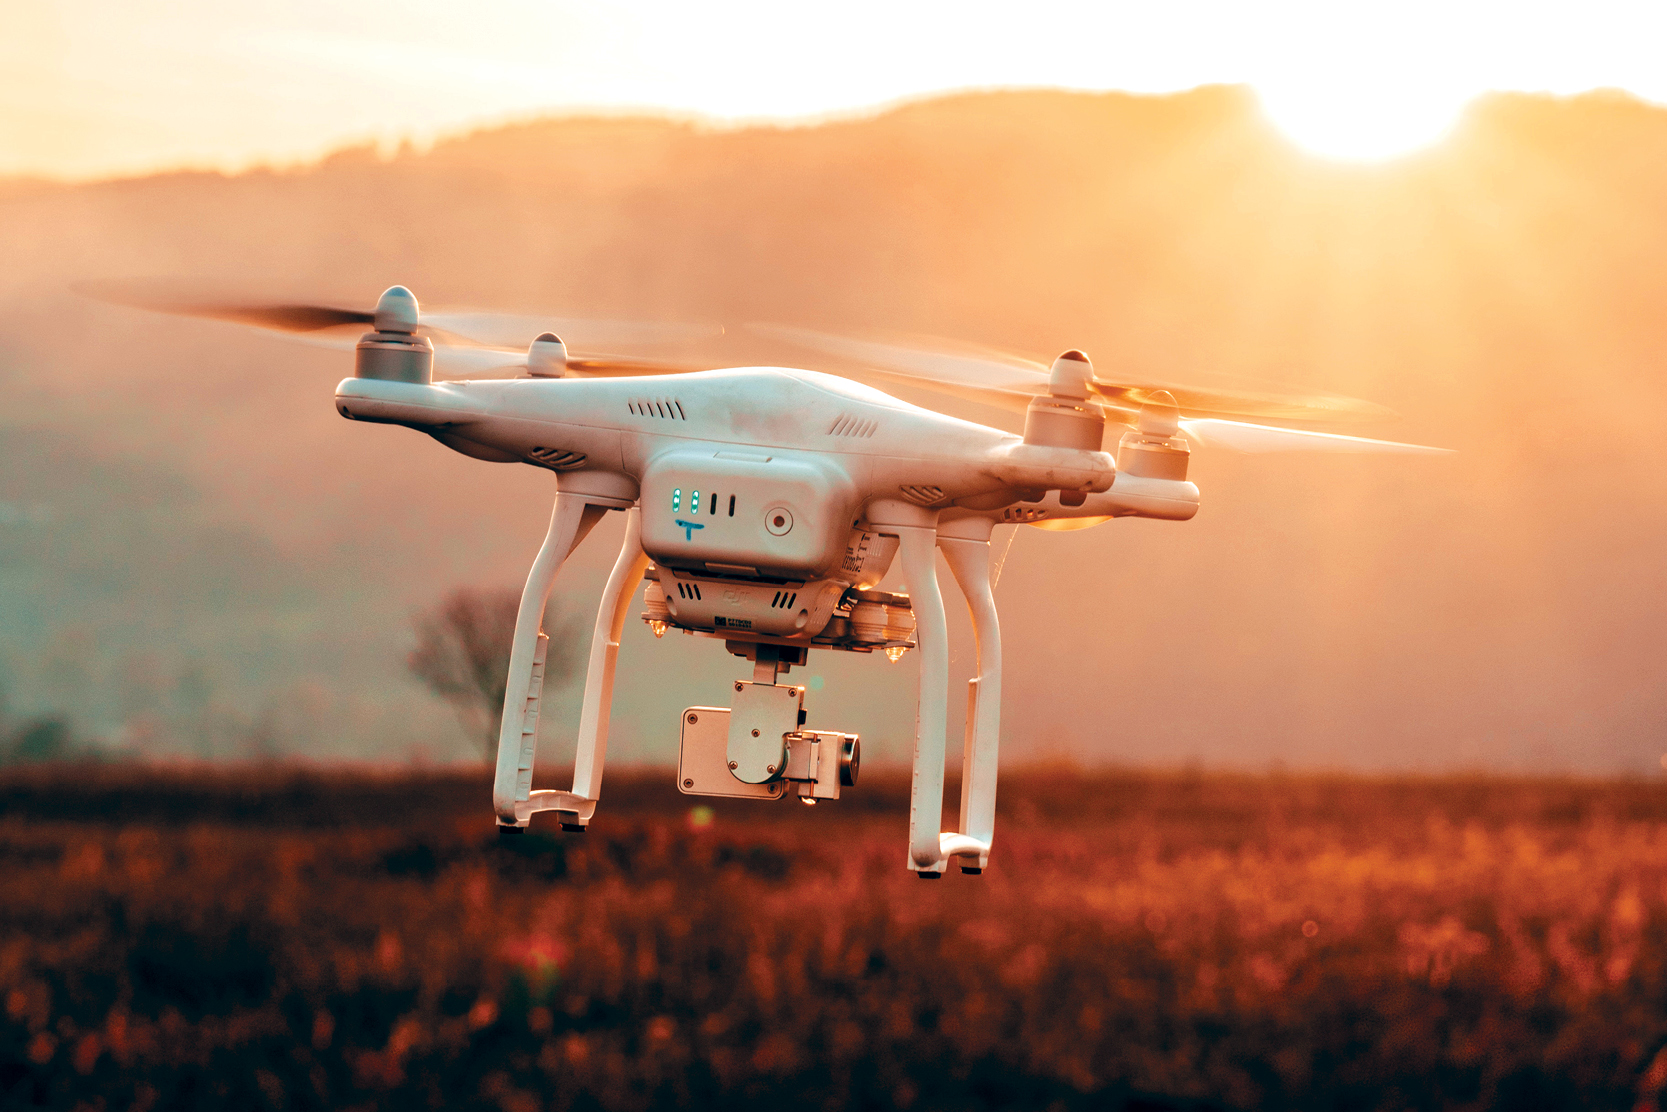 Drone Market Swot Analysis by Key Players Textron, The Boeing Company, DJI